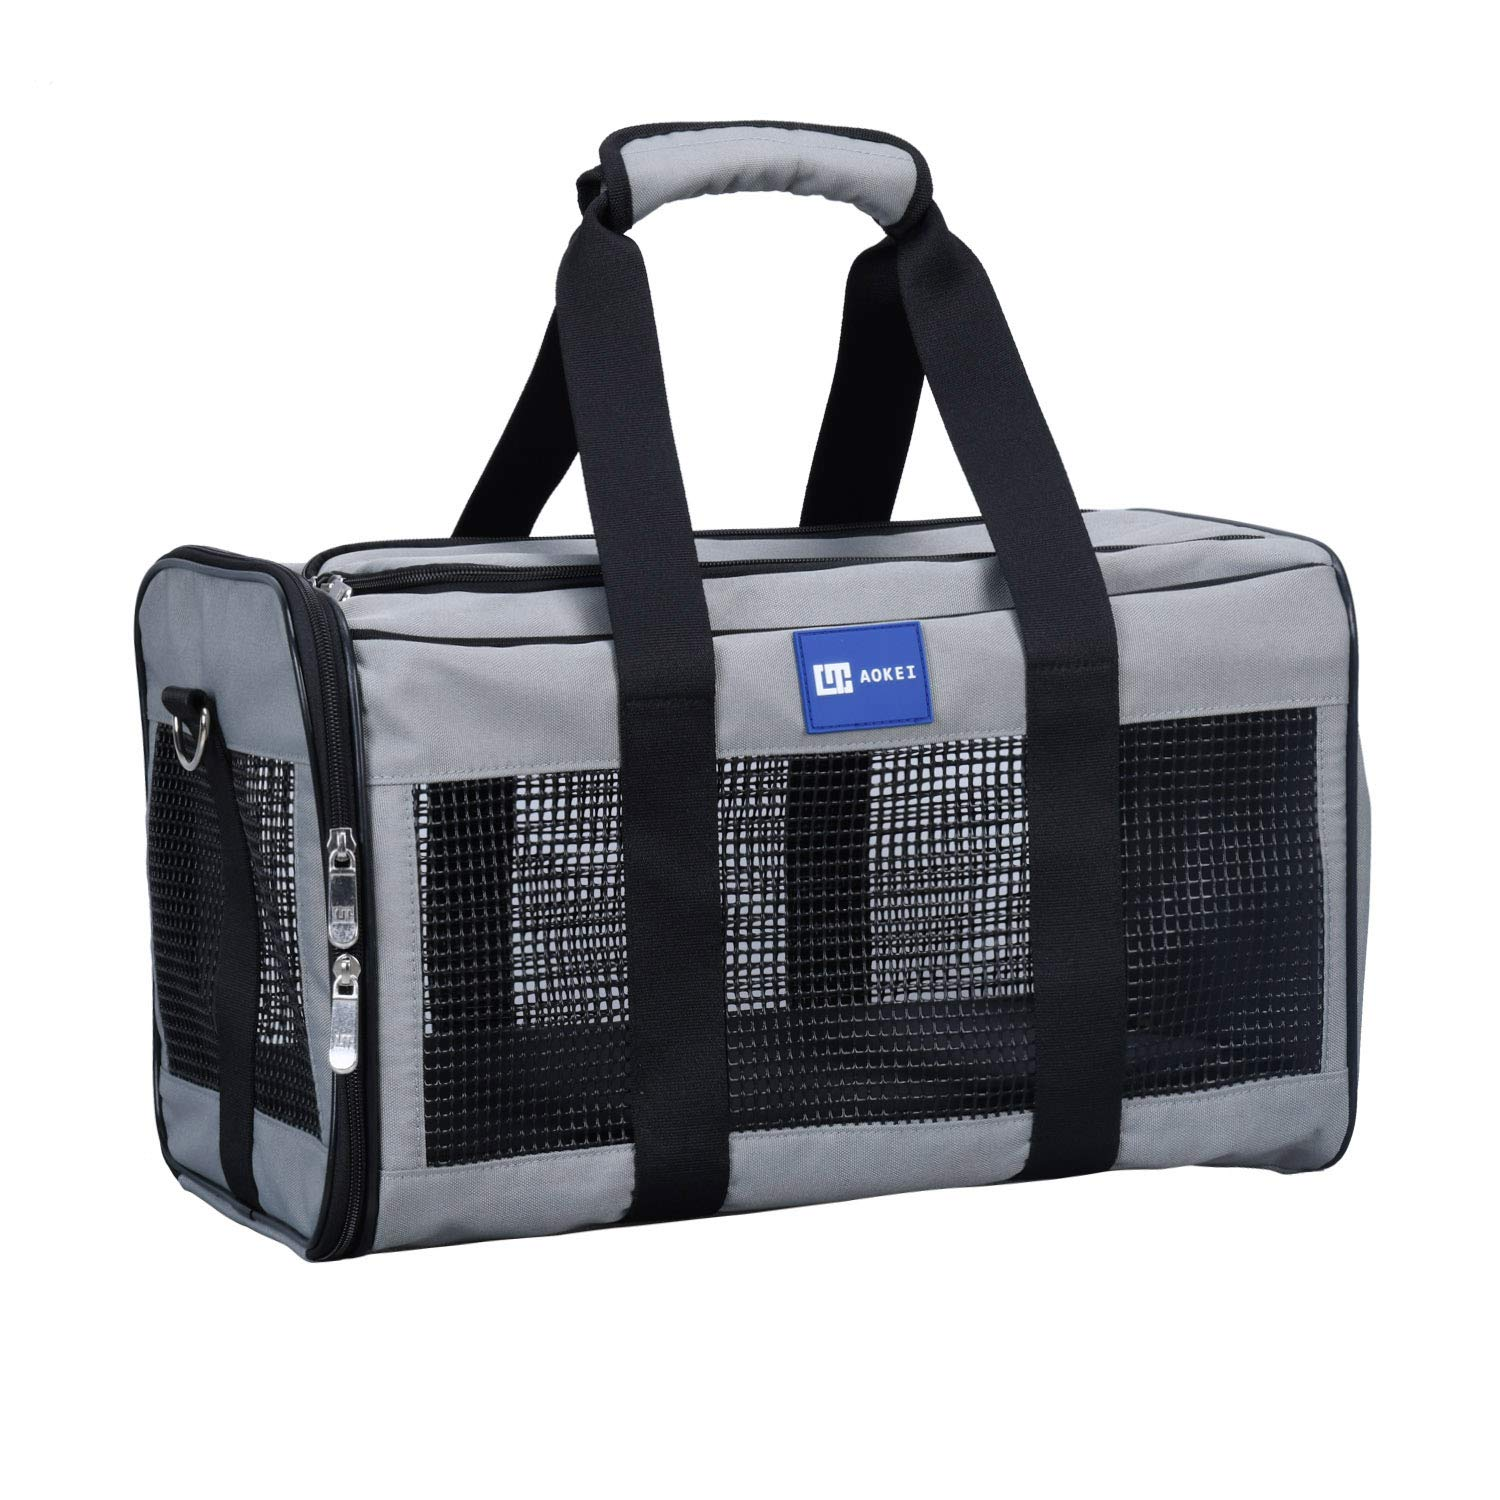 Grey 20Lx11Wx11.25L Grey 20Lx11Wx11.25L Aokei Deluxe Airline Approved Soft-Sided pet Carrier for Dogs & Cats,Portable Pet Carrier (20Lx11Wx11.25H, Grey) [Airline Approved]